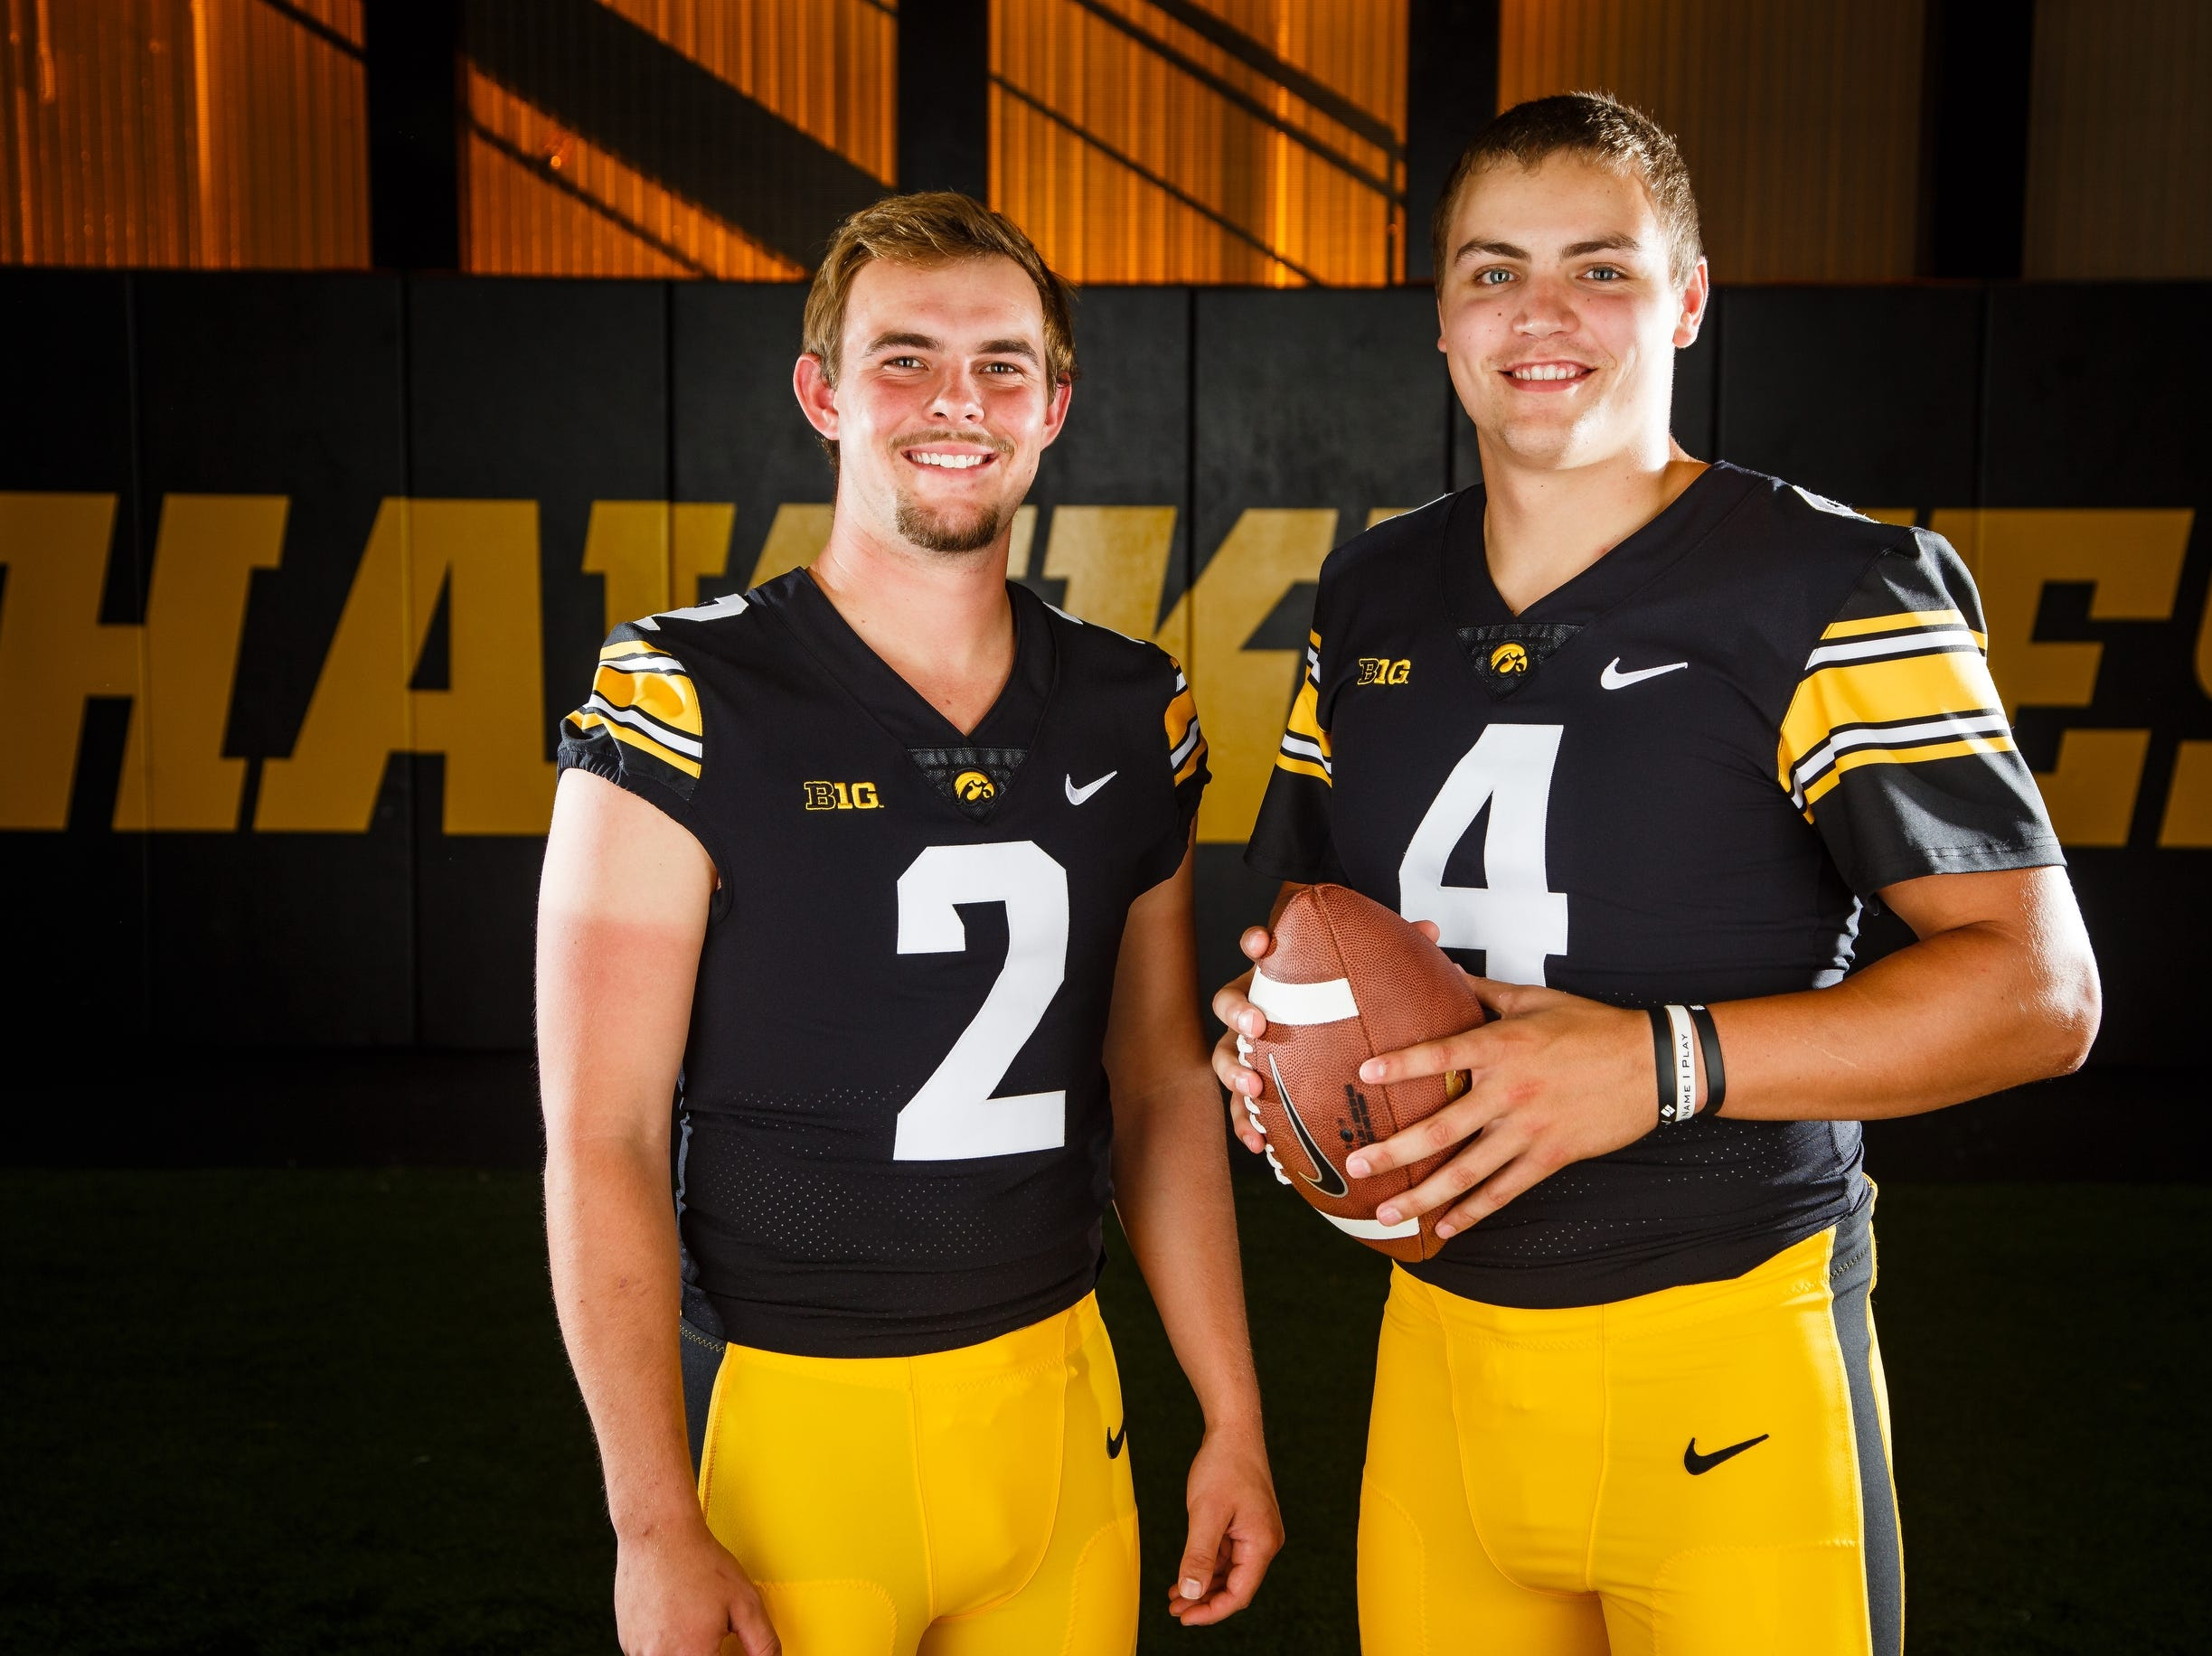 Iowa's Peyton Mansell, left, and Nate Stanely, right, pose for a photo during the Iowa Football media day on Friday, Aug. 10, 2018 in Iowa City.